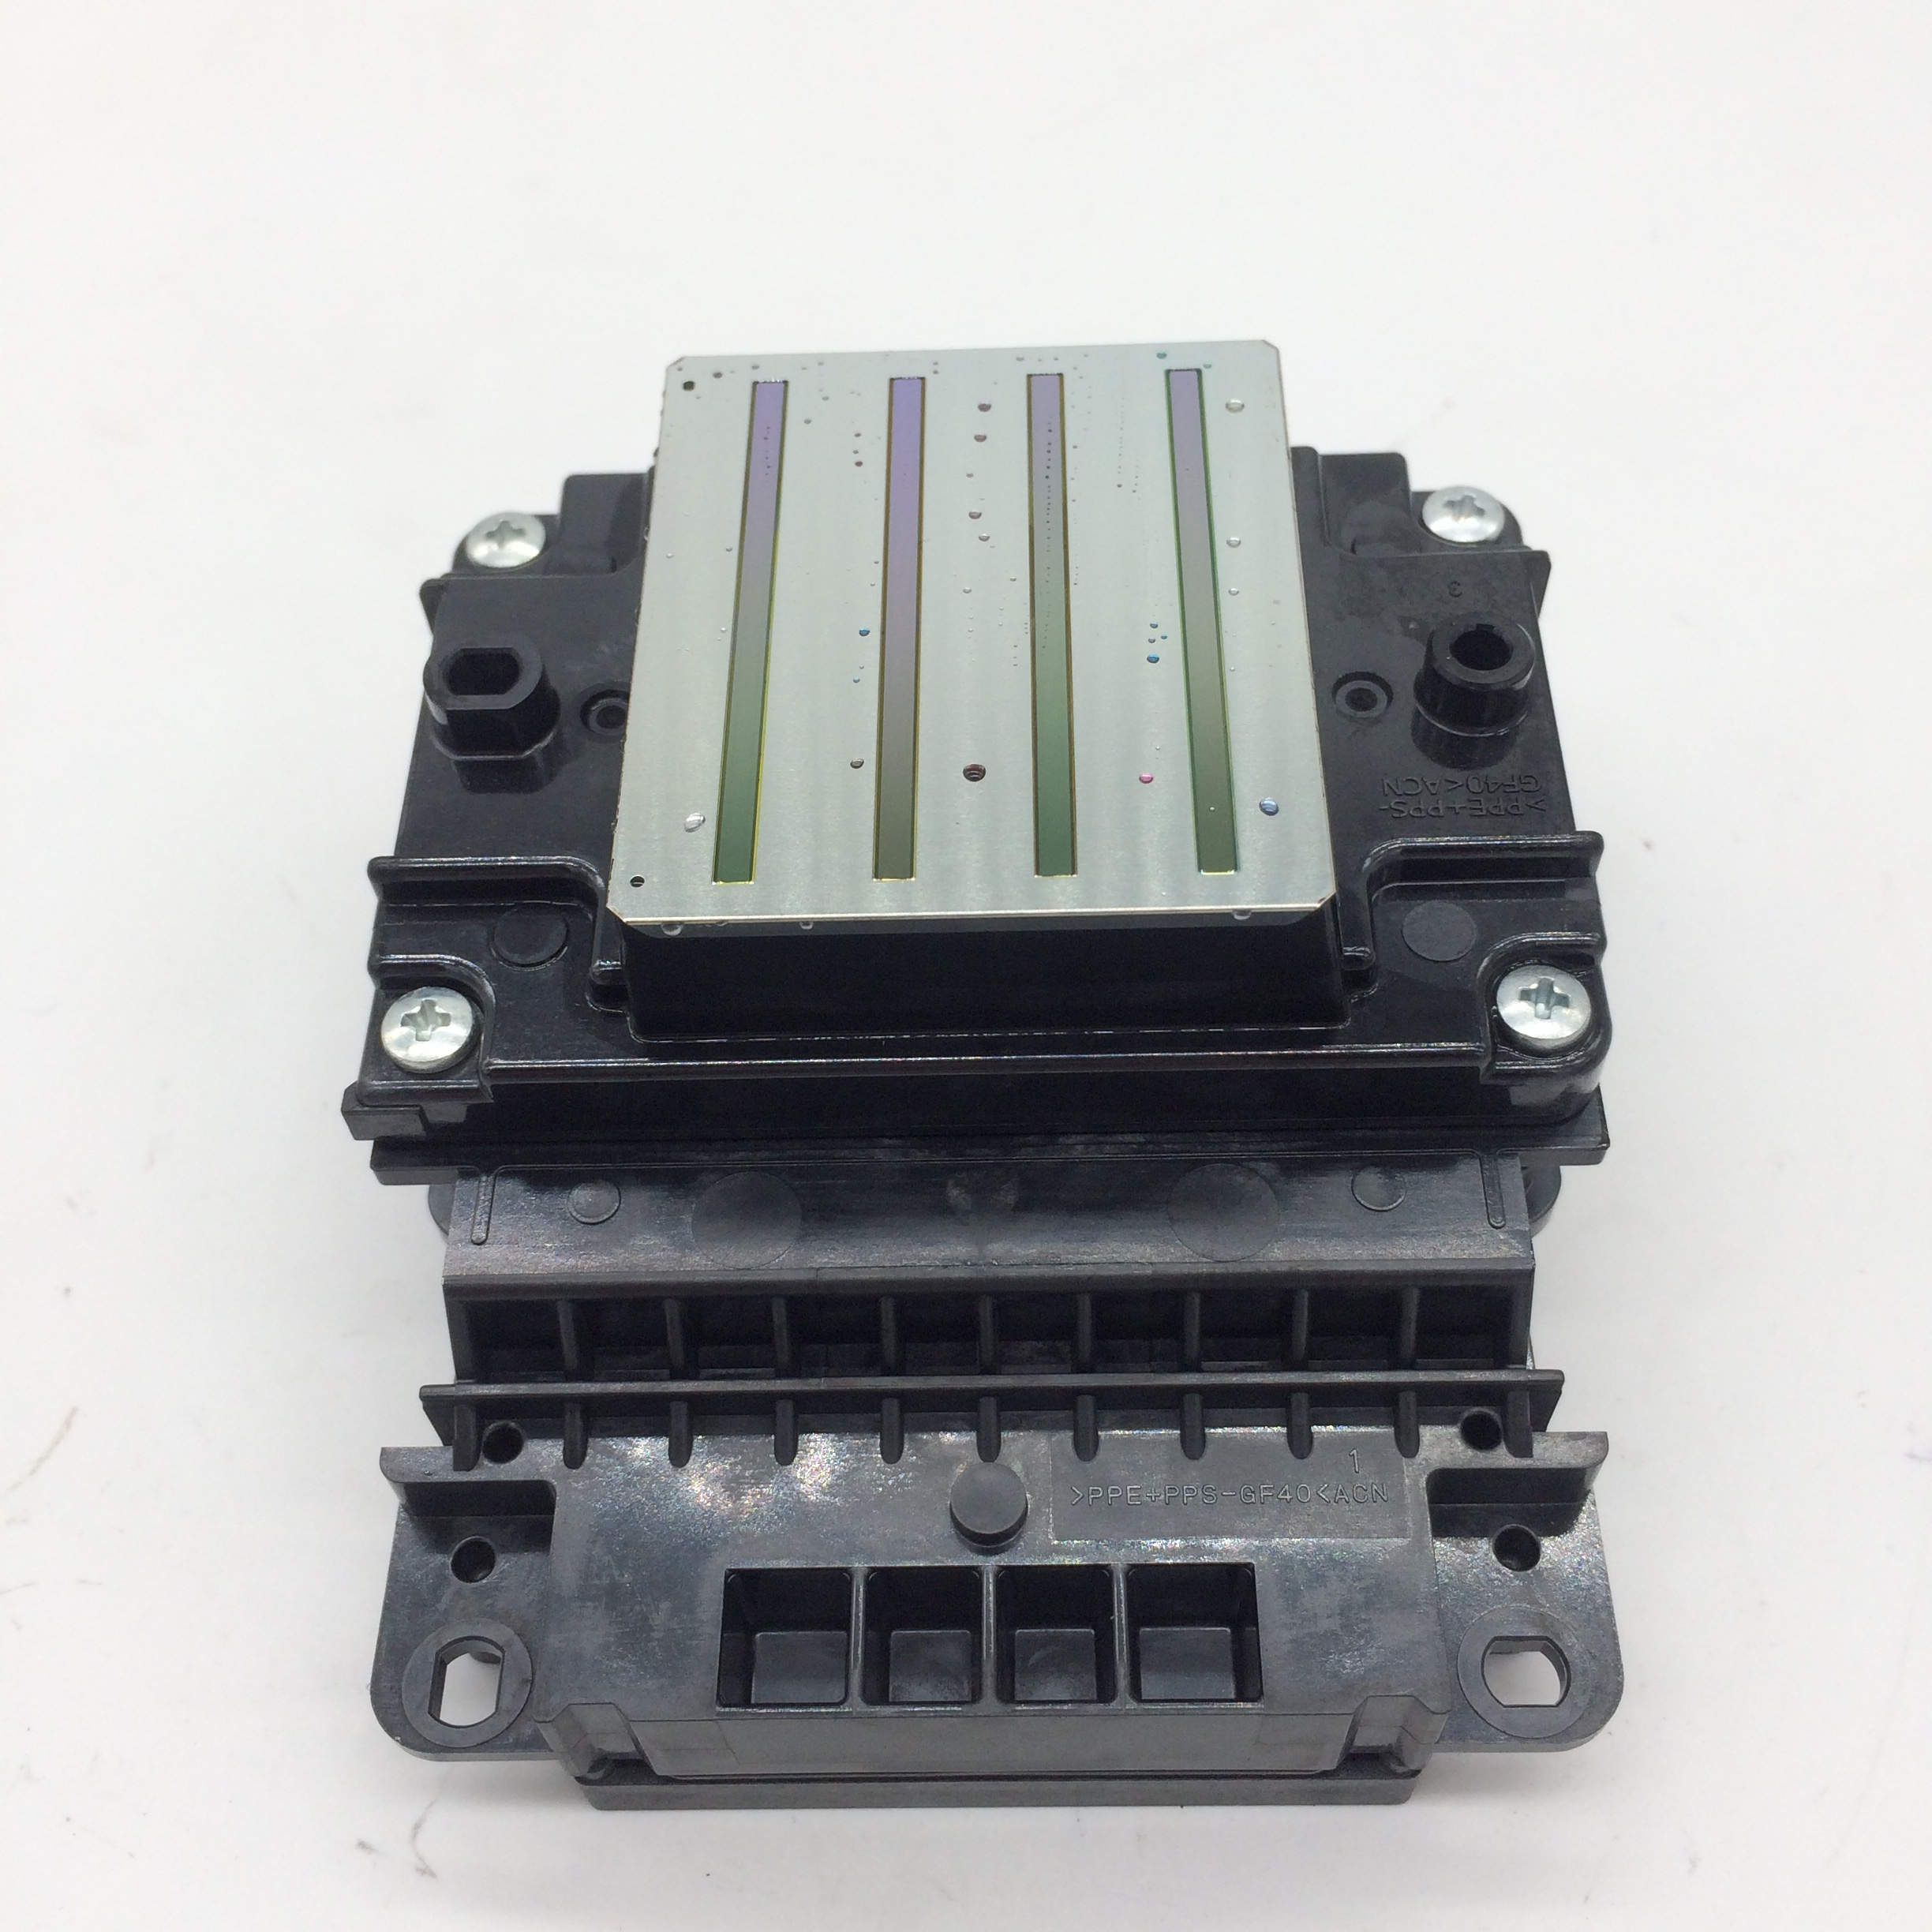 Original G6 5113 Second Locked Print Head FA1610210 FOR INDUSTRIAL PRINTER WF5111 WF5110 WF-8090 WF8090 WF4630 5620, NO CARD